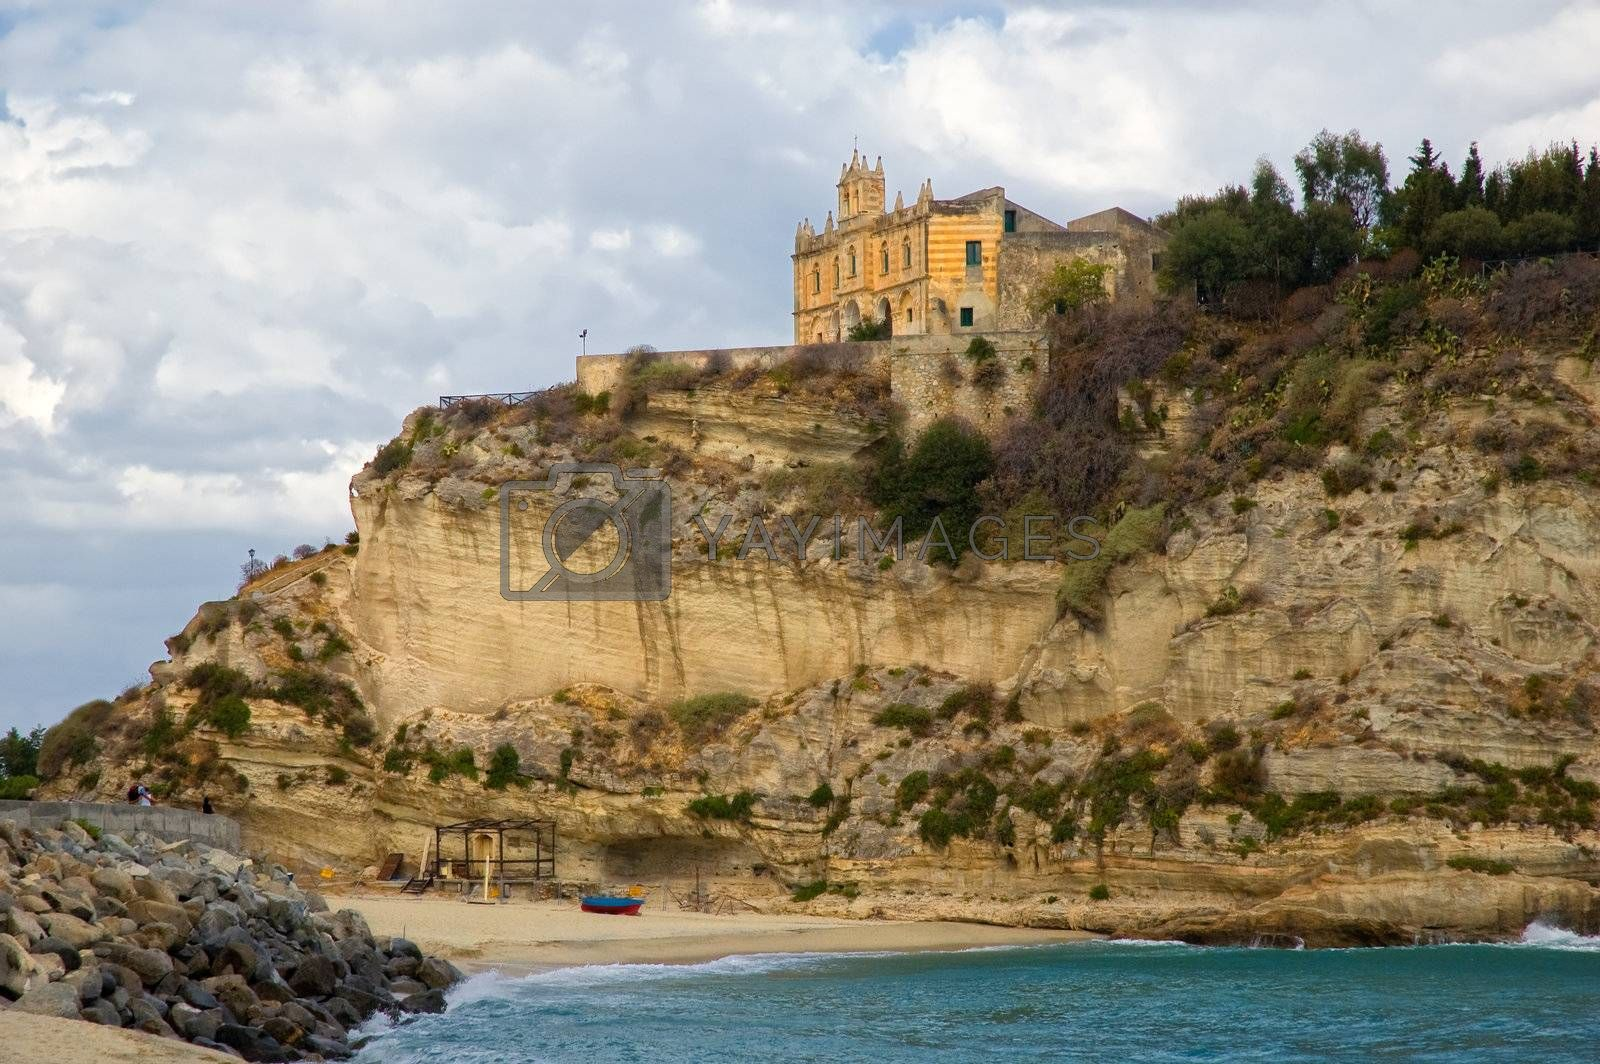 Shot taken in Tropea, Calabria, Italy. Church on rocks with sea and boat on beach.